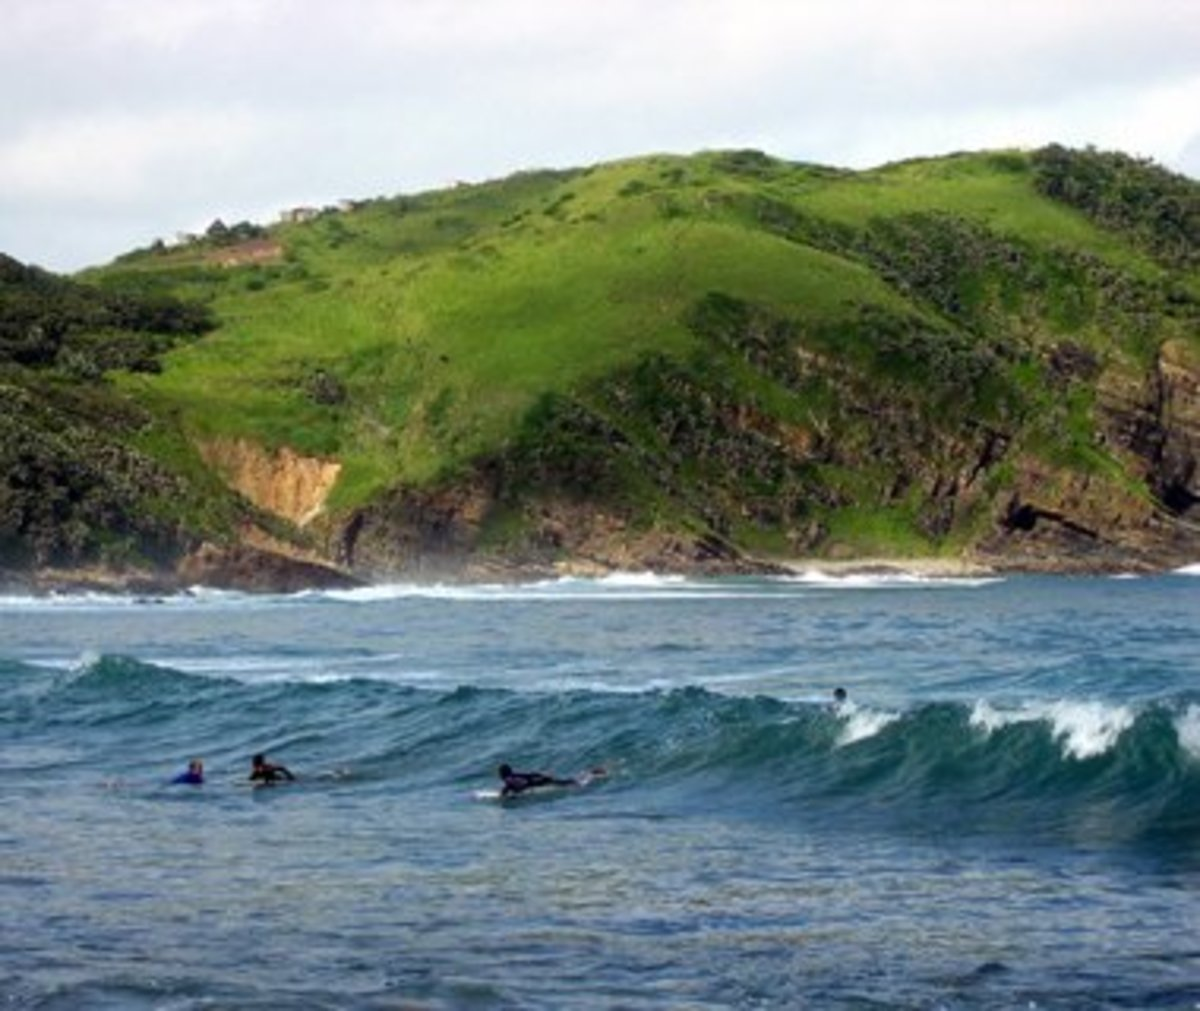 beach at Port St John's, South Africa where waves are perfect for surfers